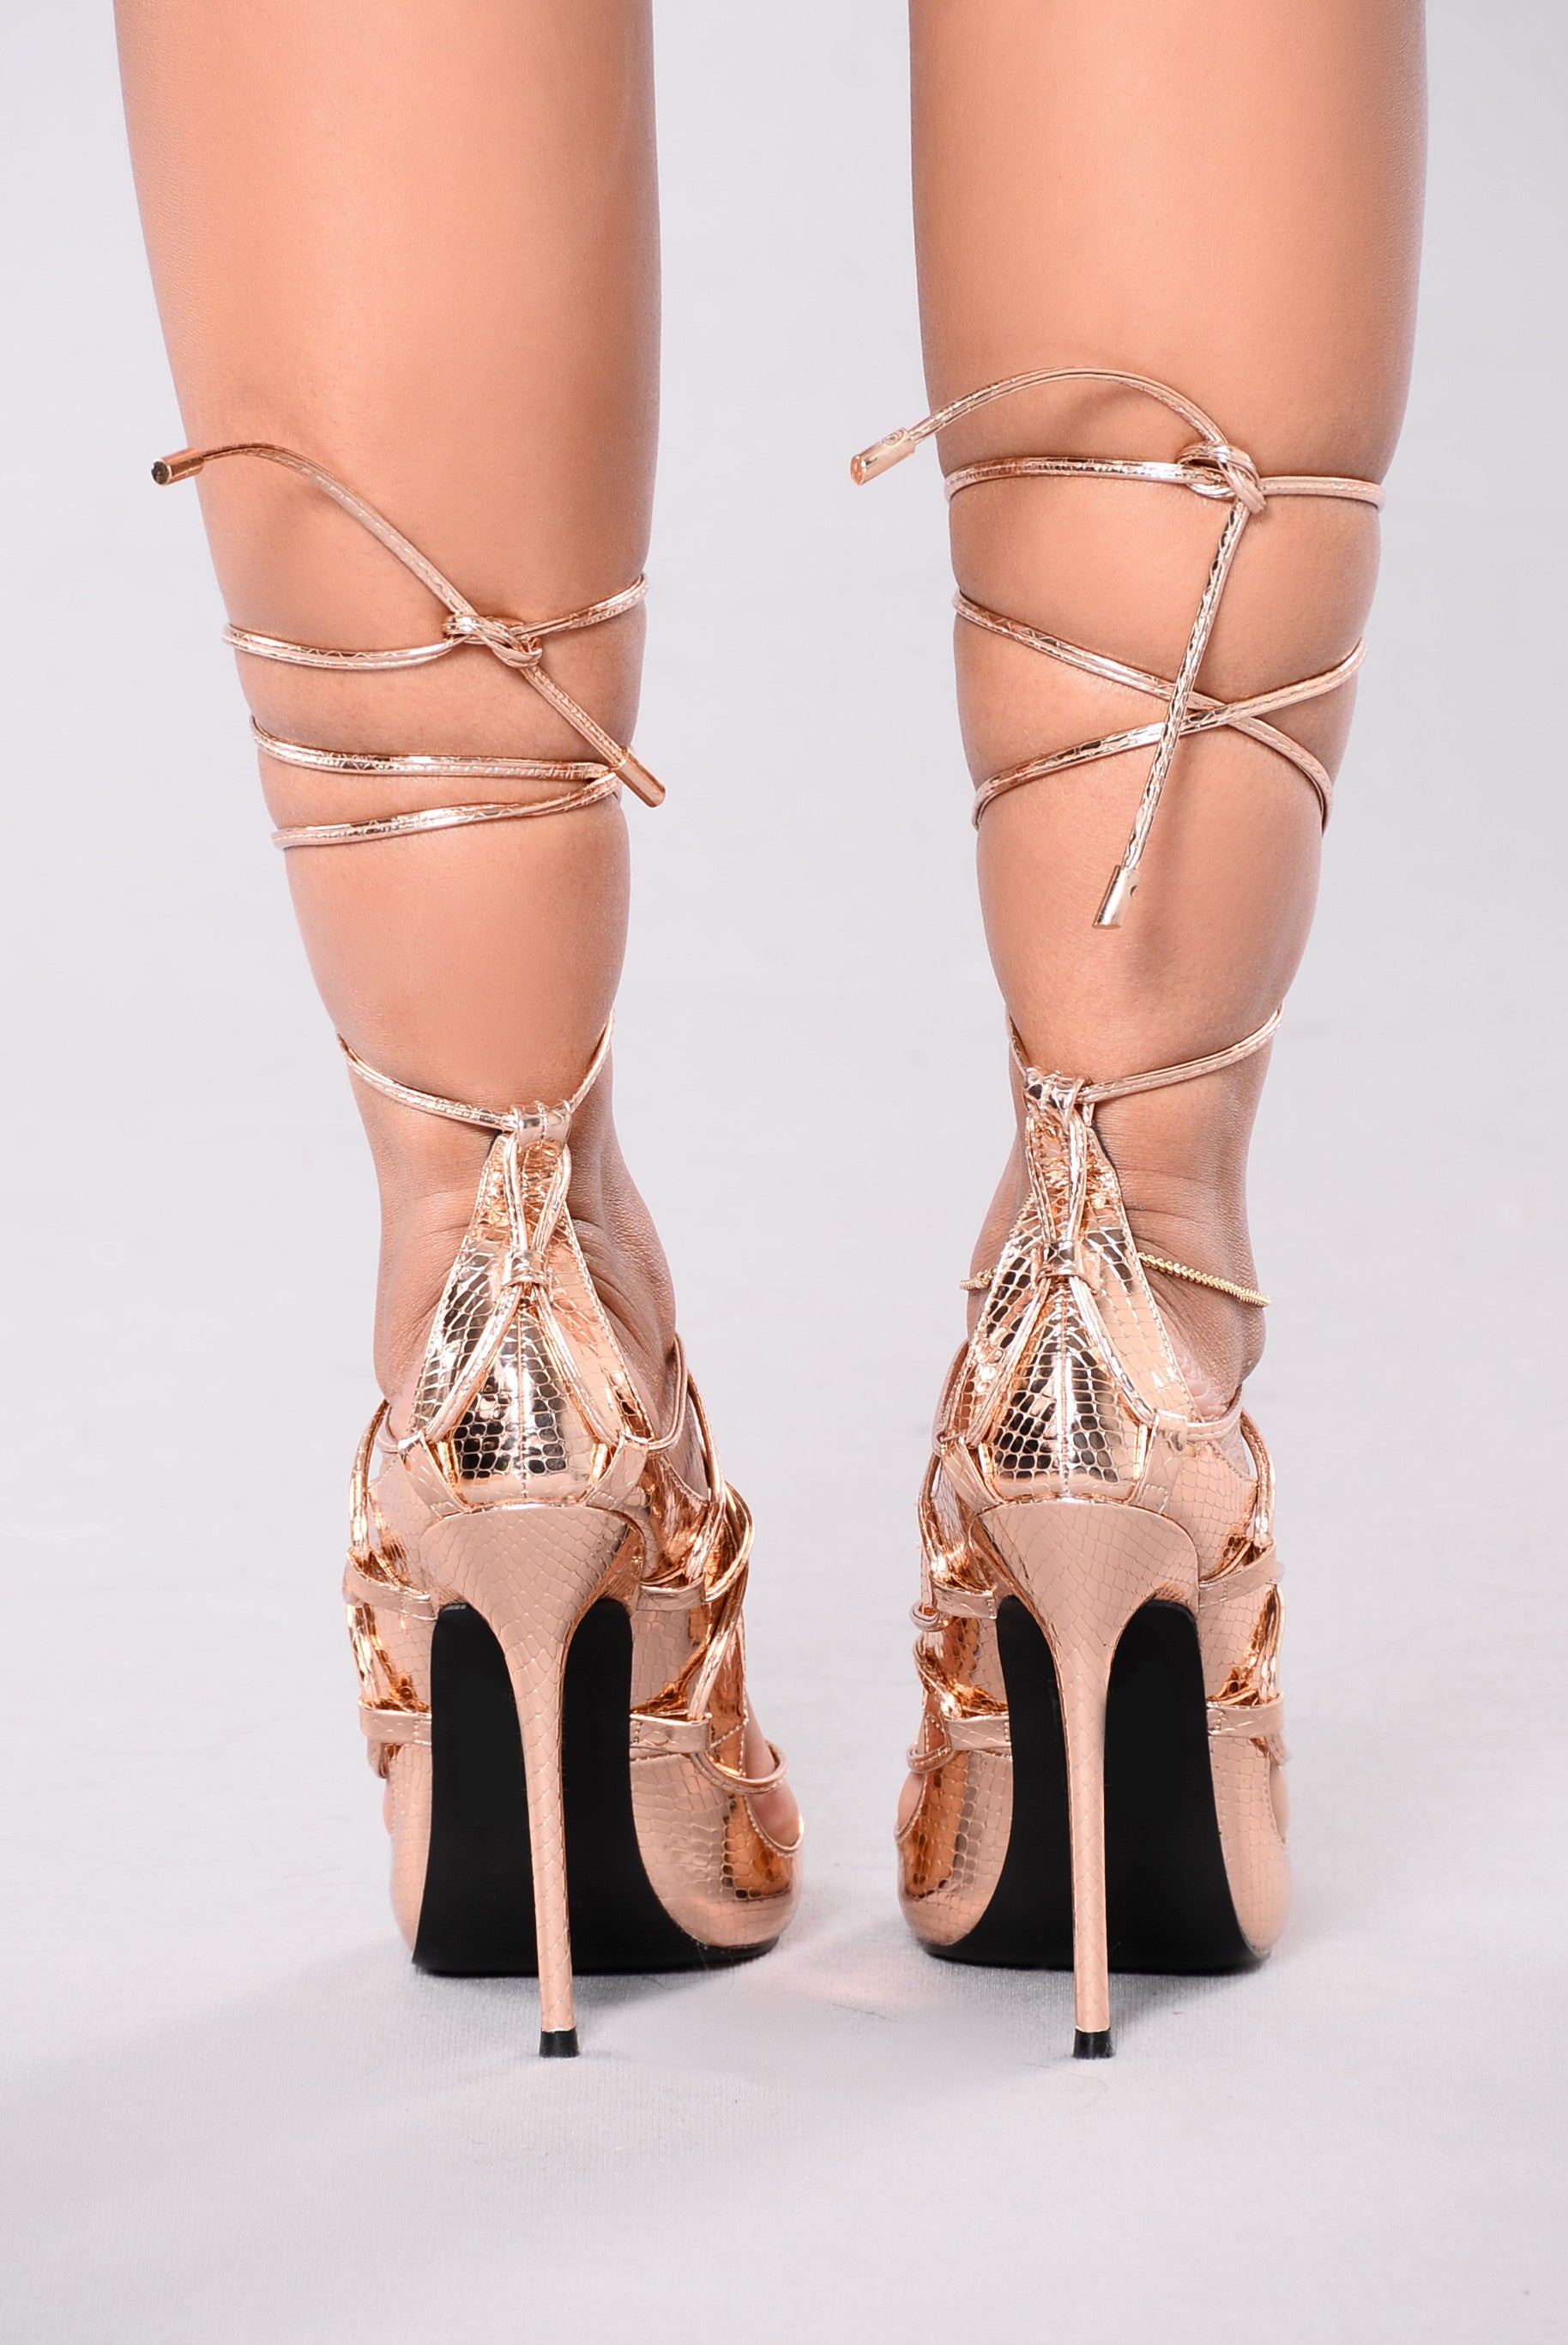 ace5654bb0c7 Hello Again Lace Up Heels - Rose Gold